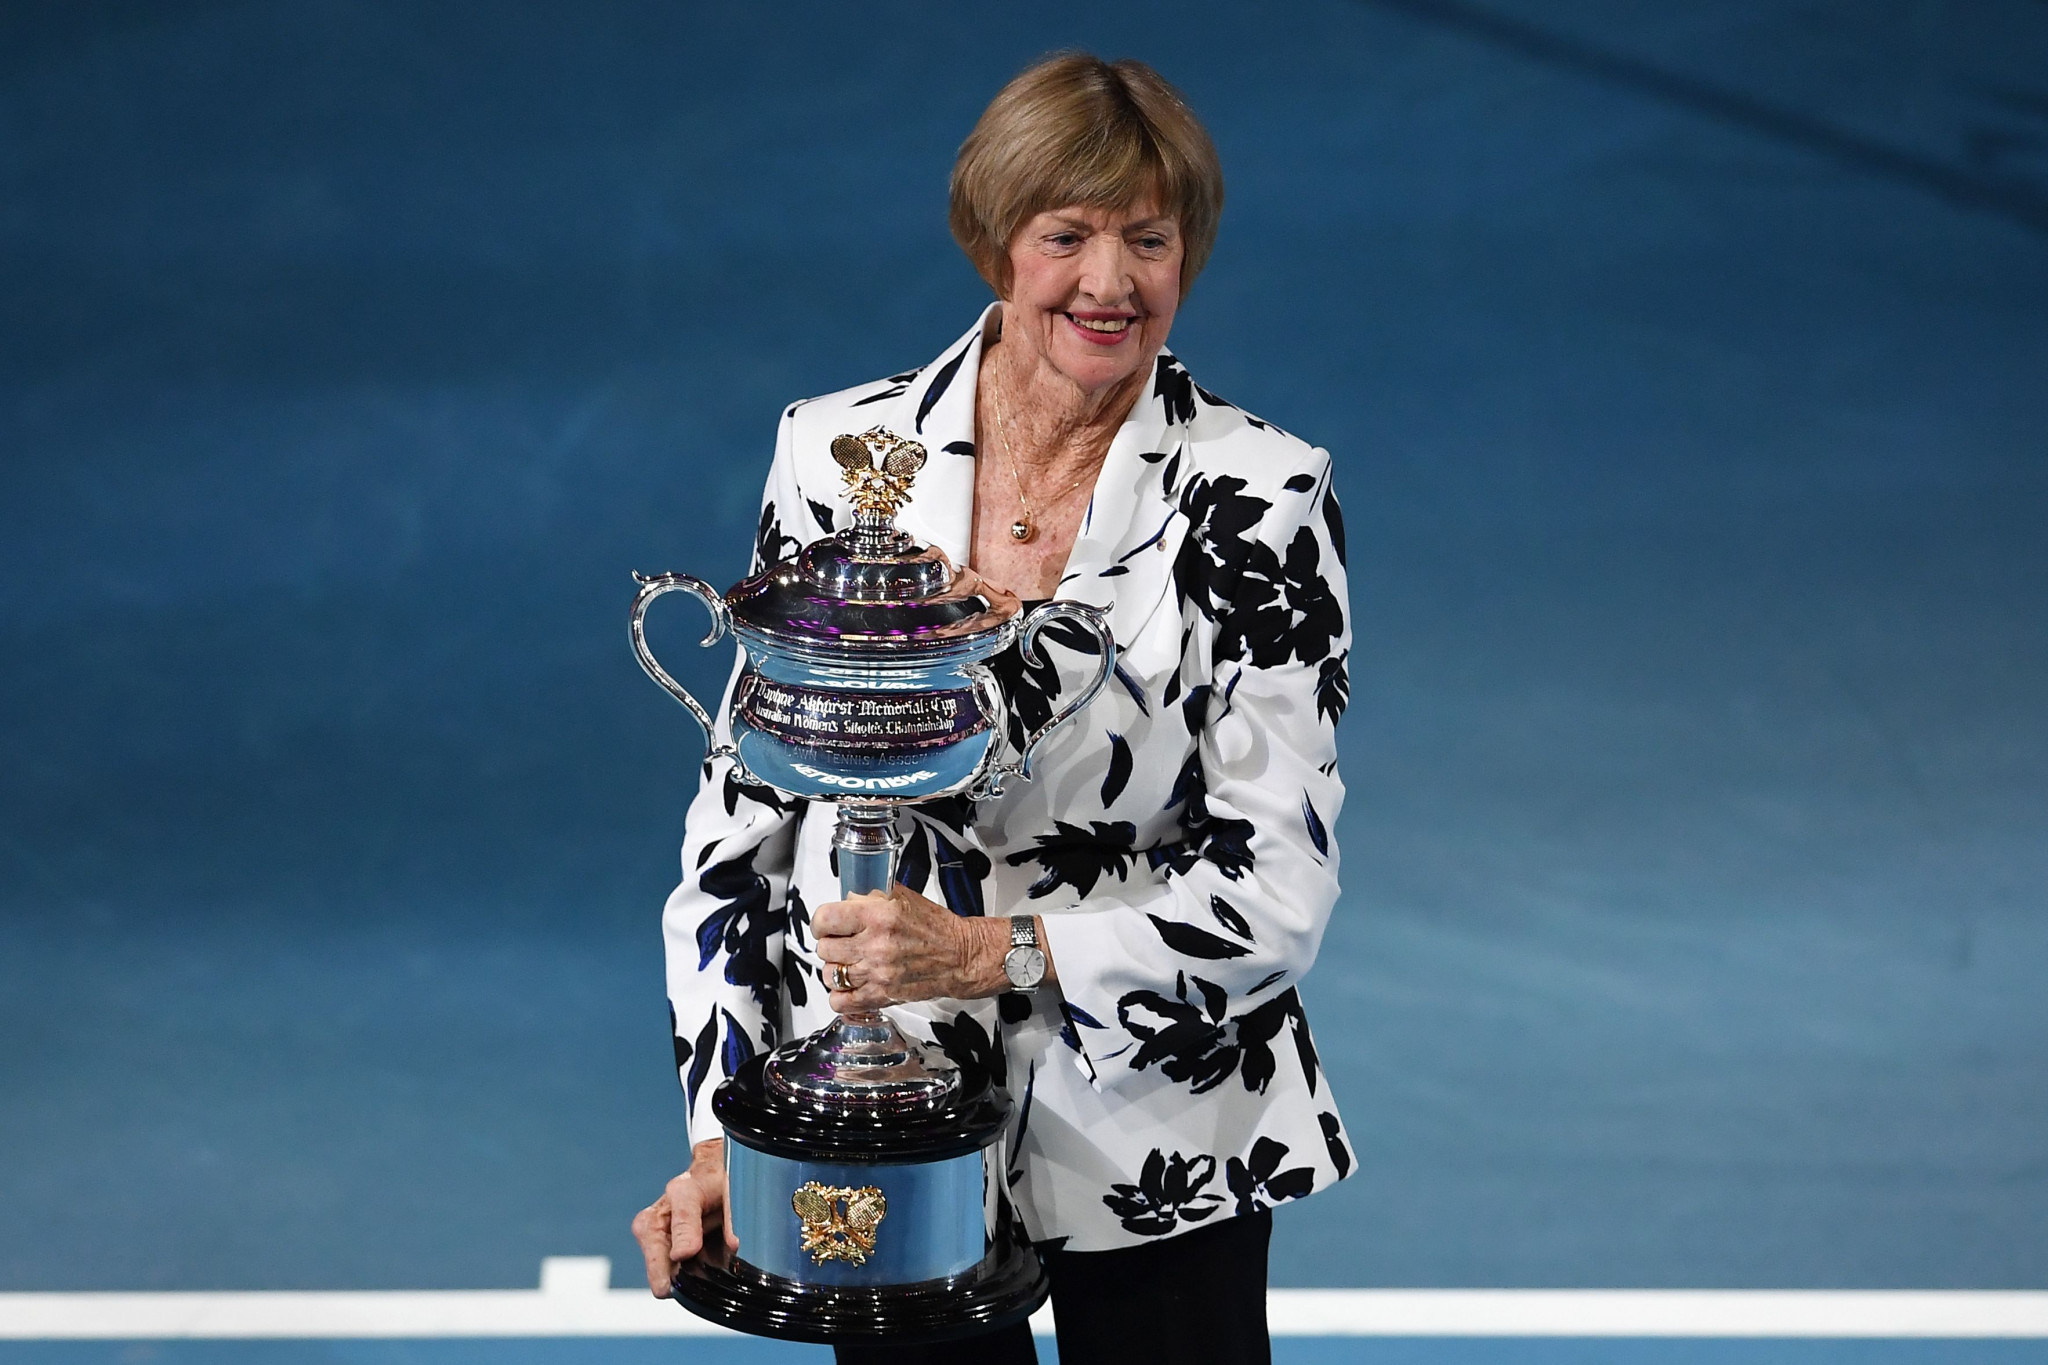 Controversial tennis champion Court presented with trophy at Australian Open